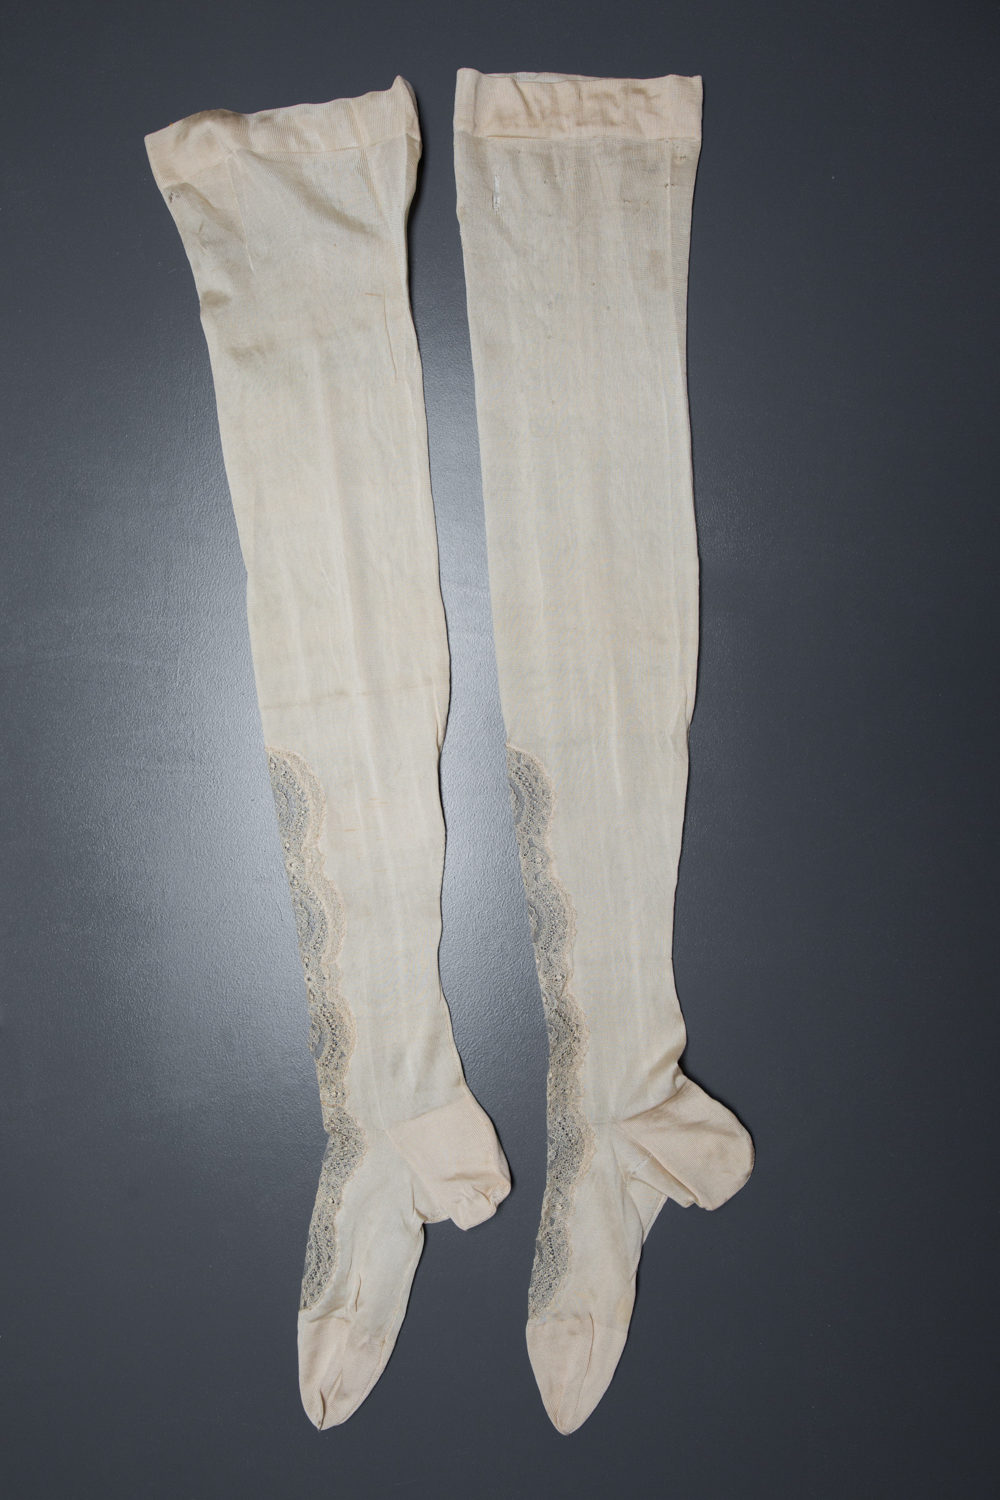 Cream Silk Stockings With Lace Inserts, c. 1900s, USA. The Underpinnings Museum. Photography by Tigz Rice